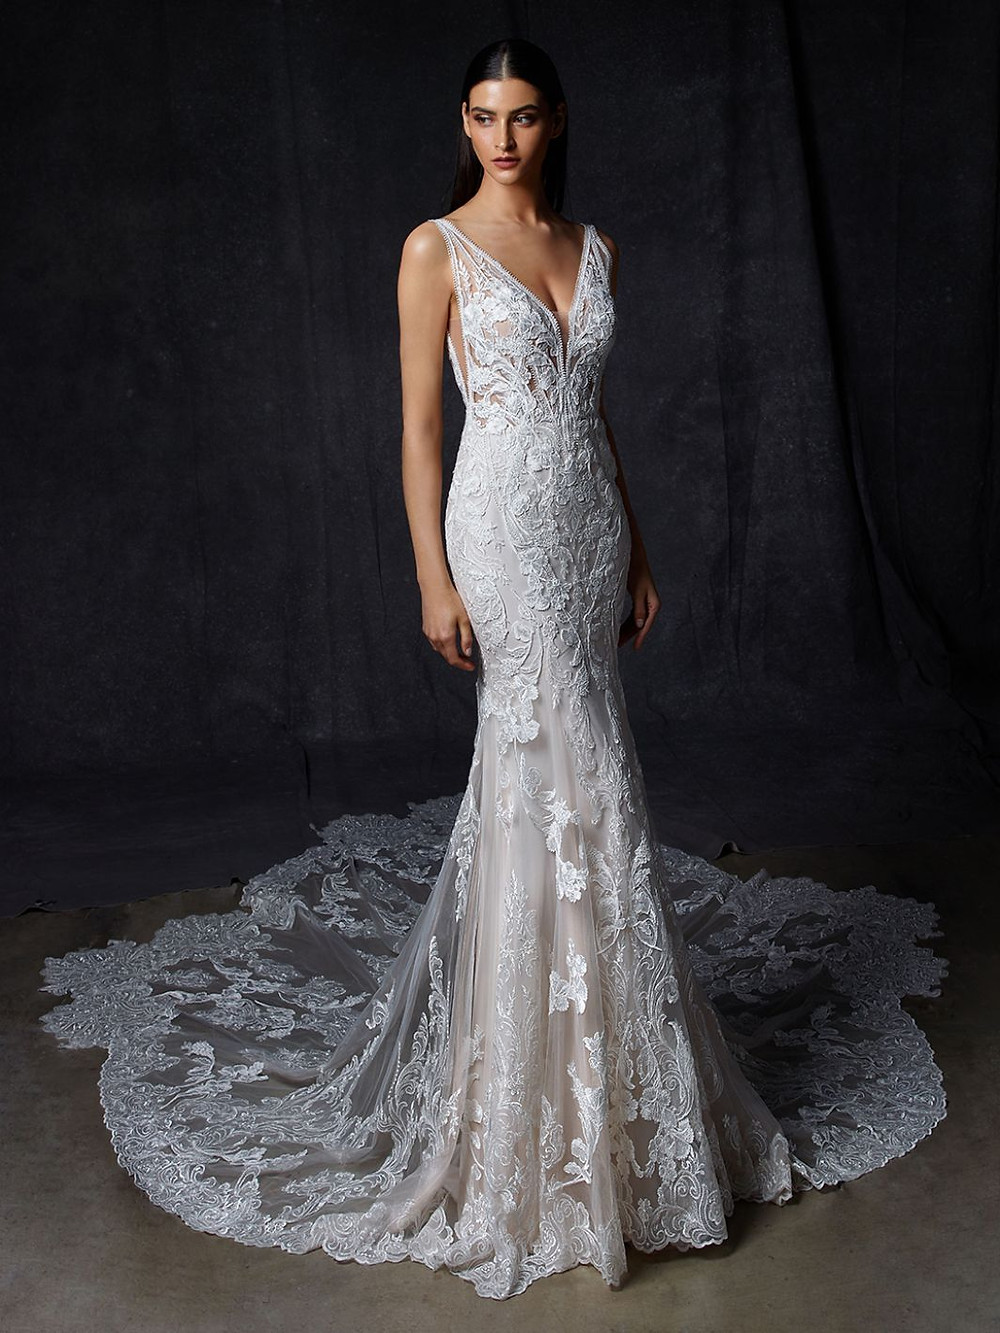 An Enzoani lace, v neck wedding dress with a long train